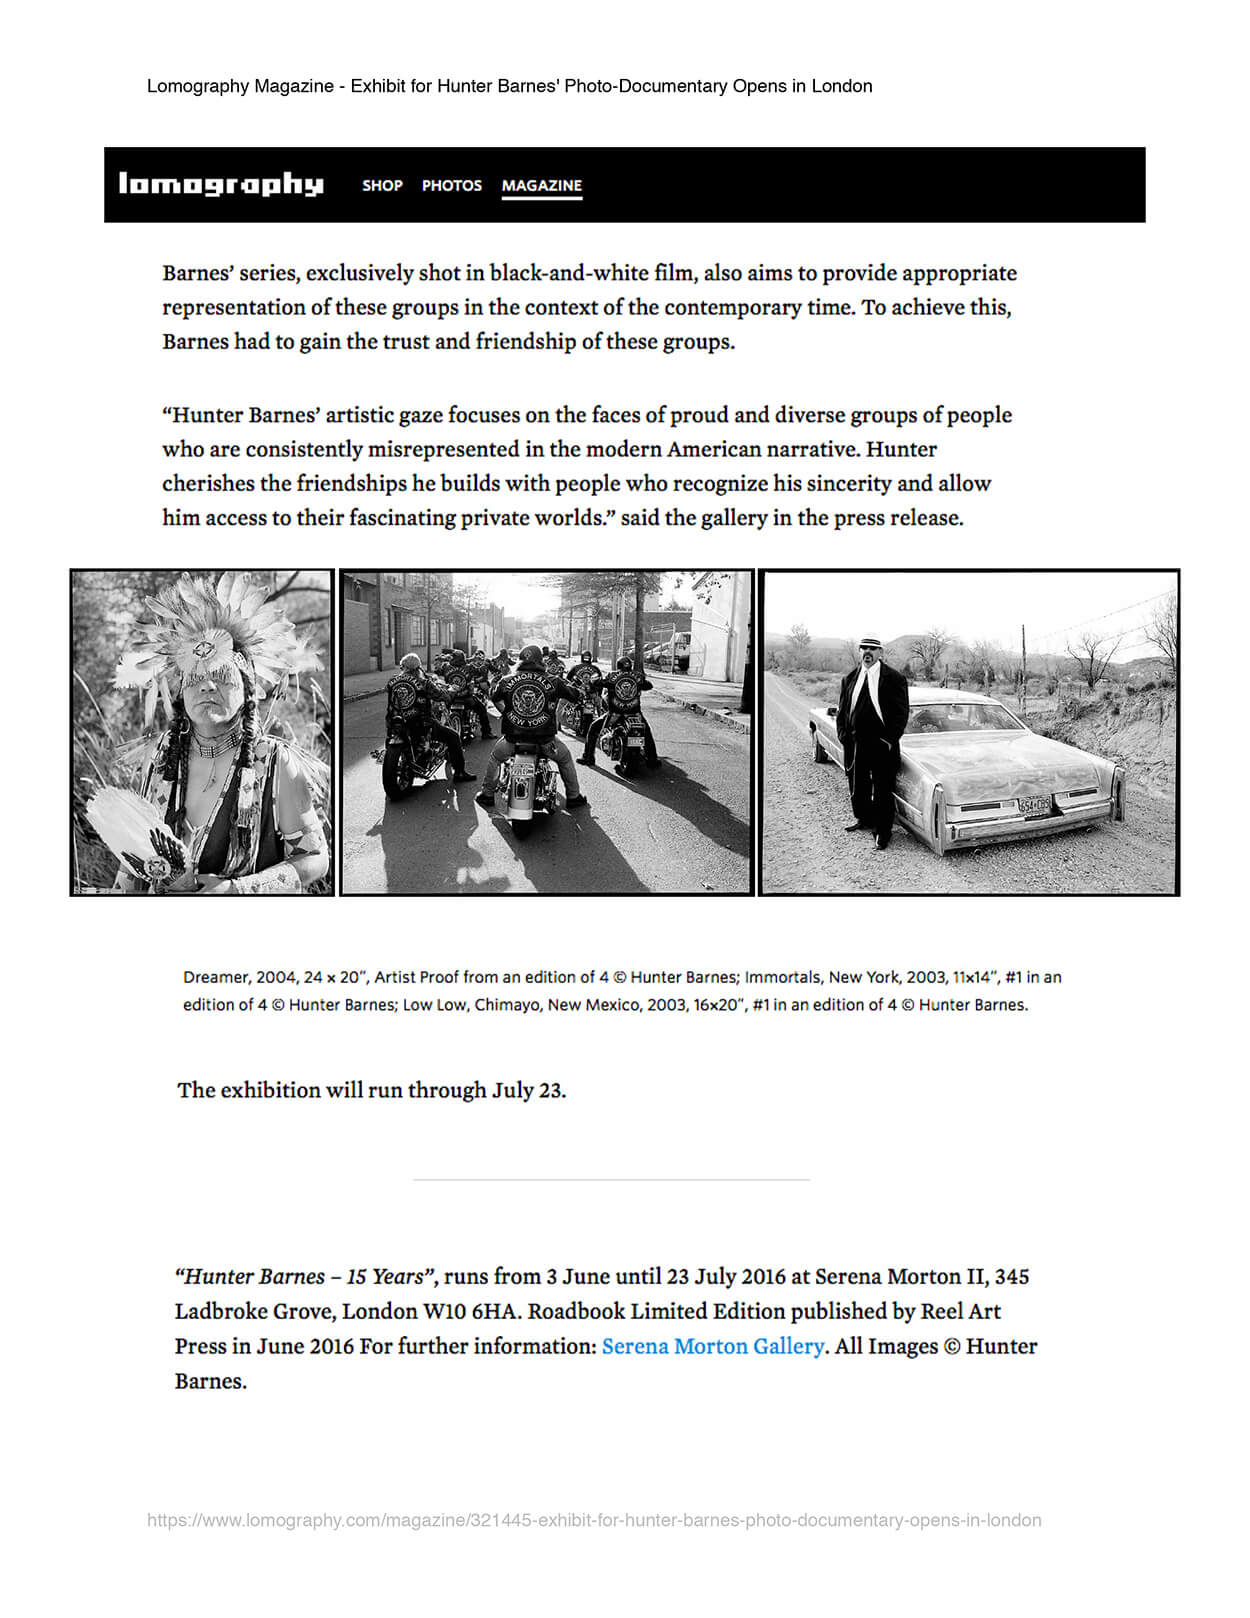 Exhibit for Hunter Barnes' photo documentary opens in London - Lomography Magazine - Page 2